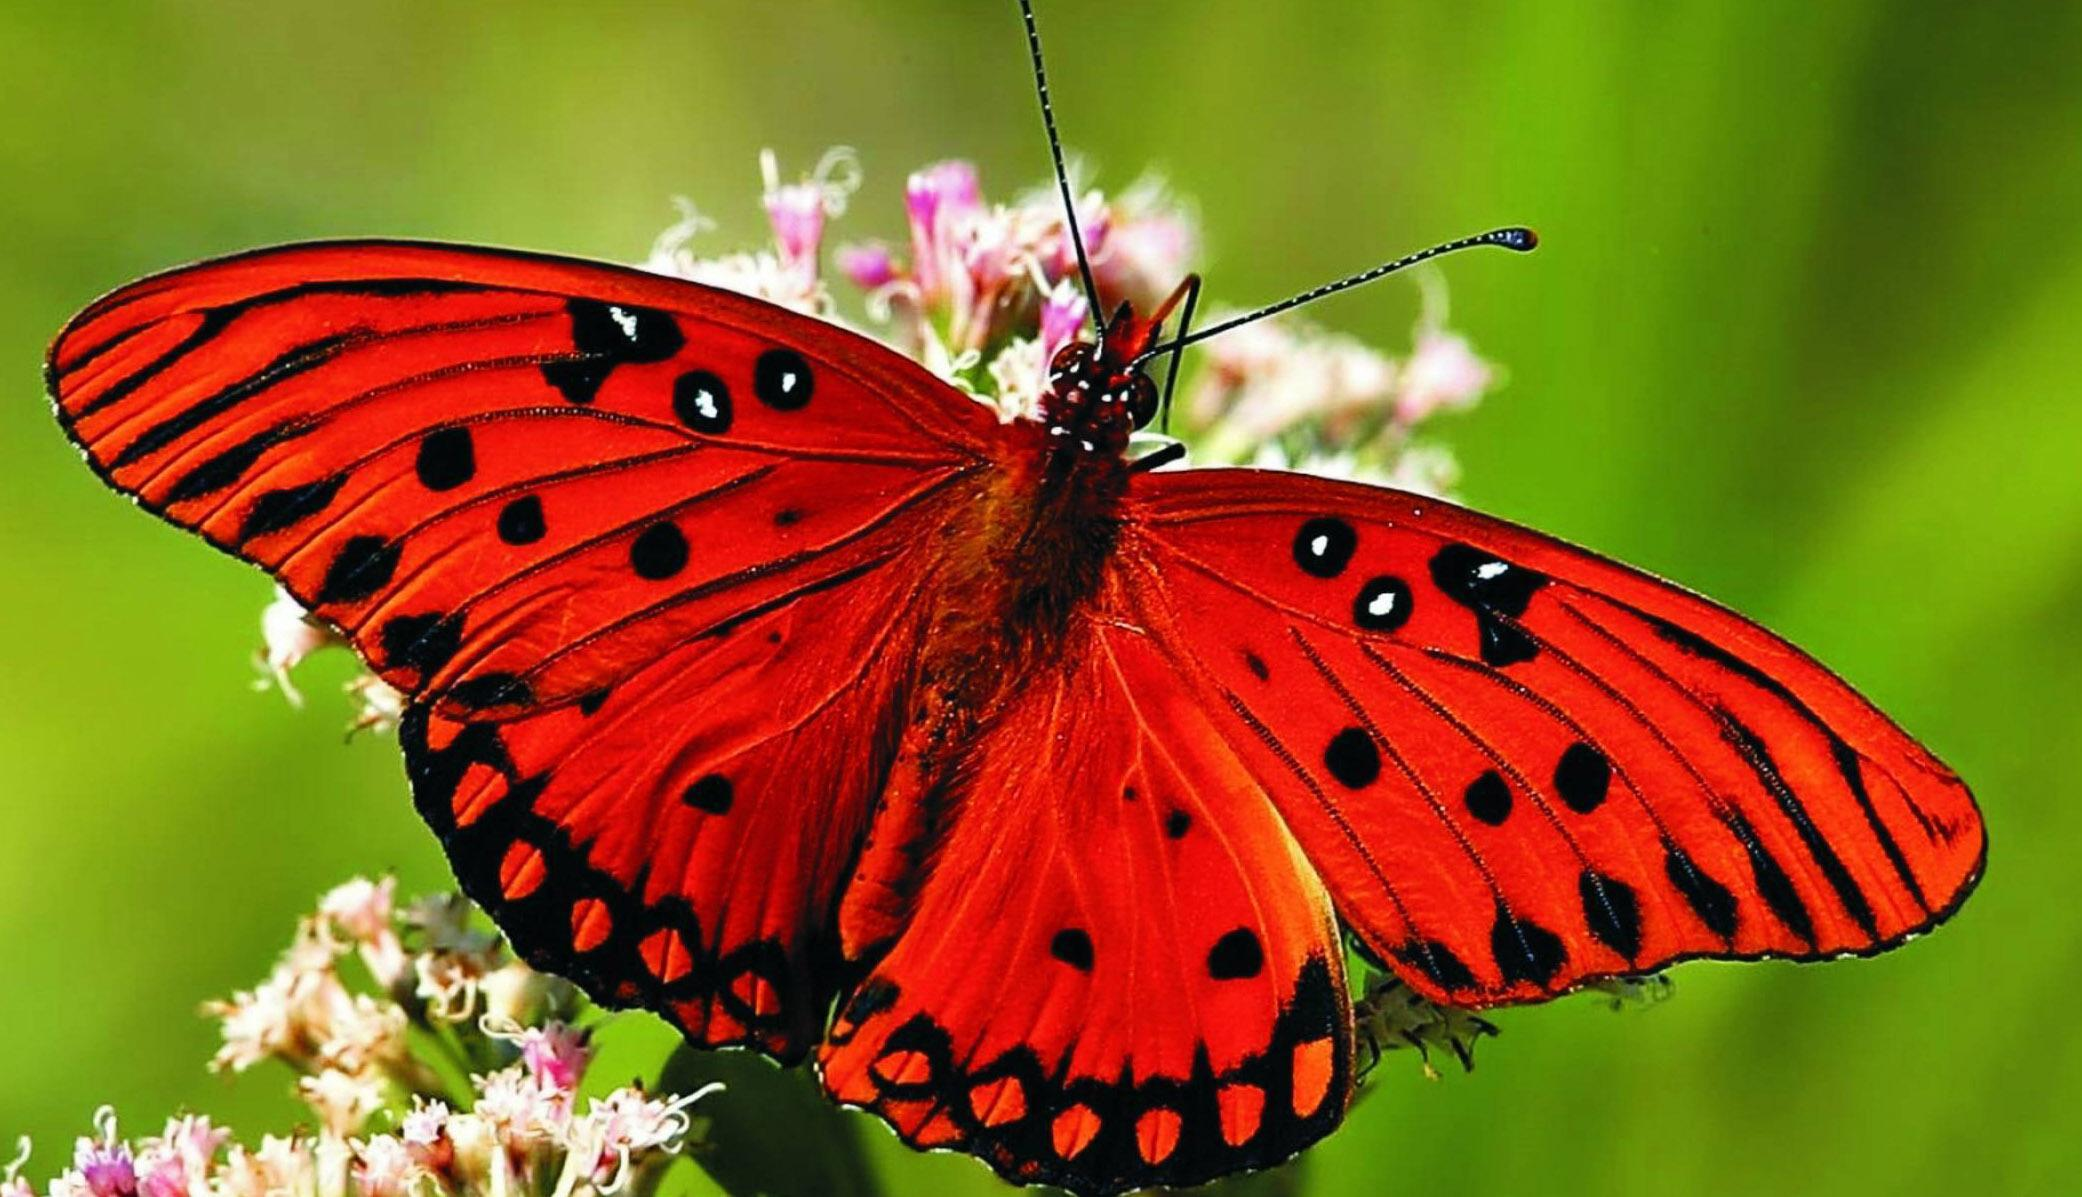 Butterfly Wallpaper 4k For Android Apk Download